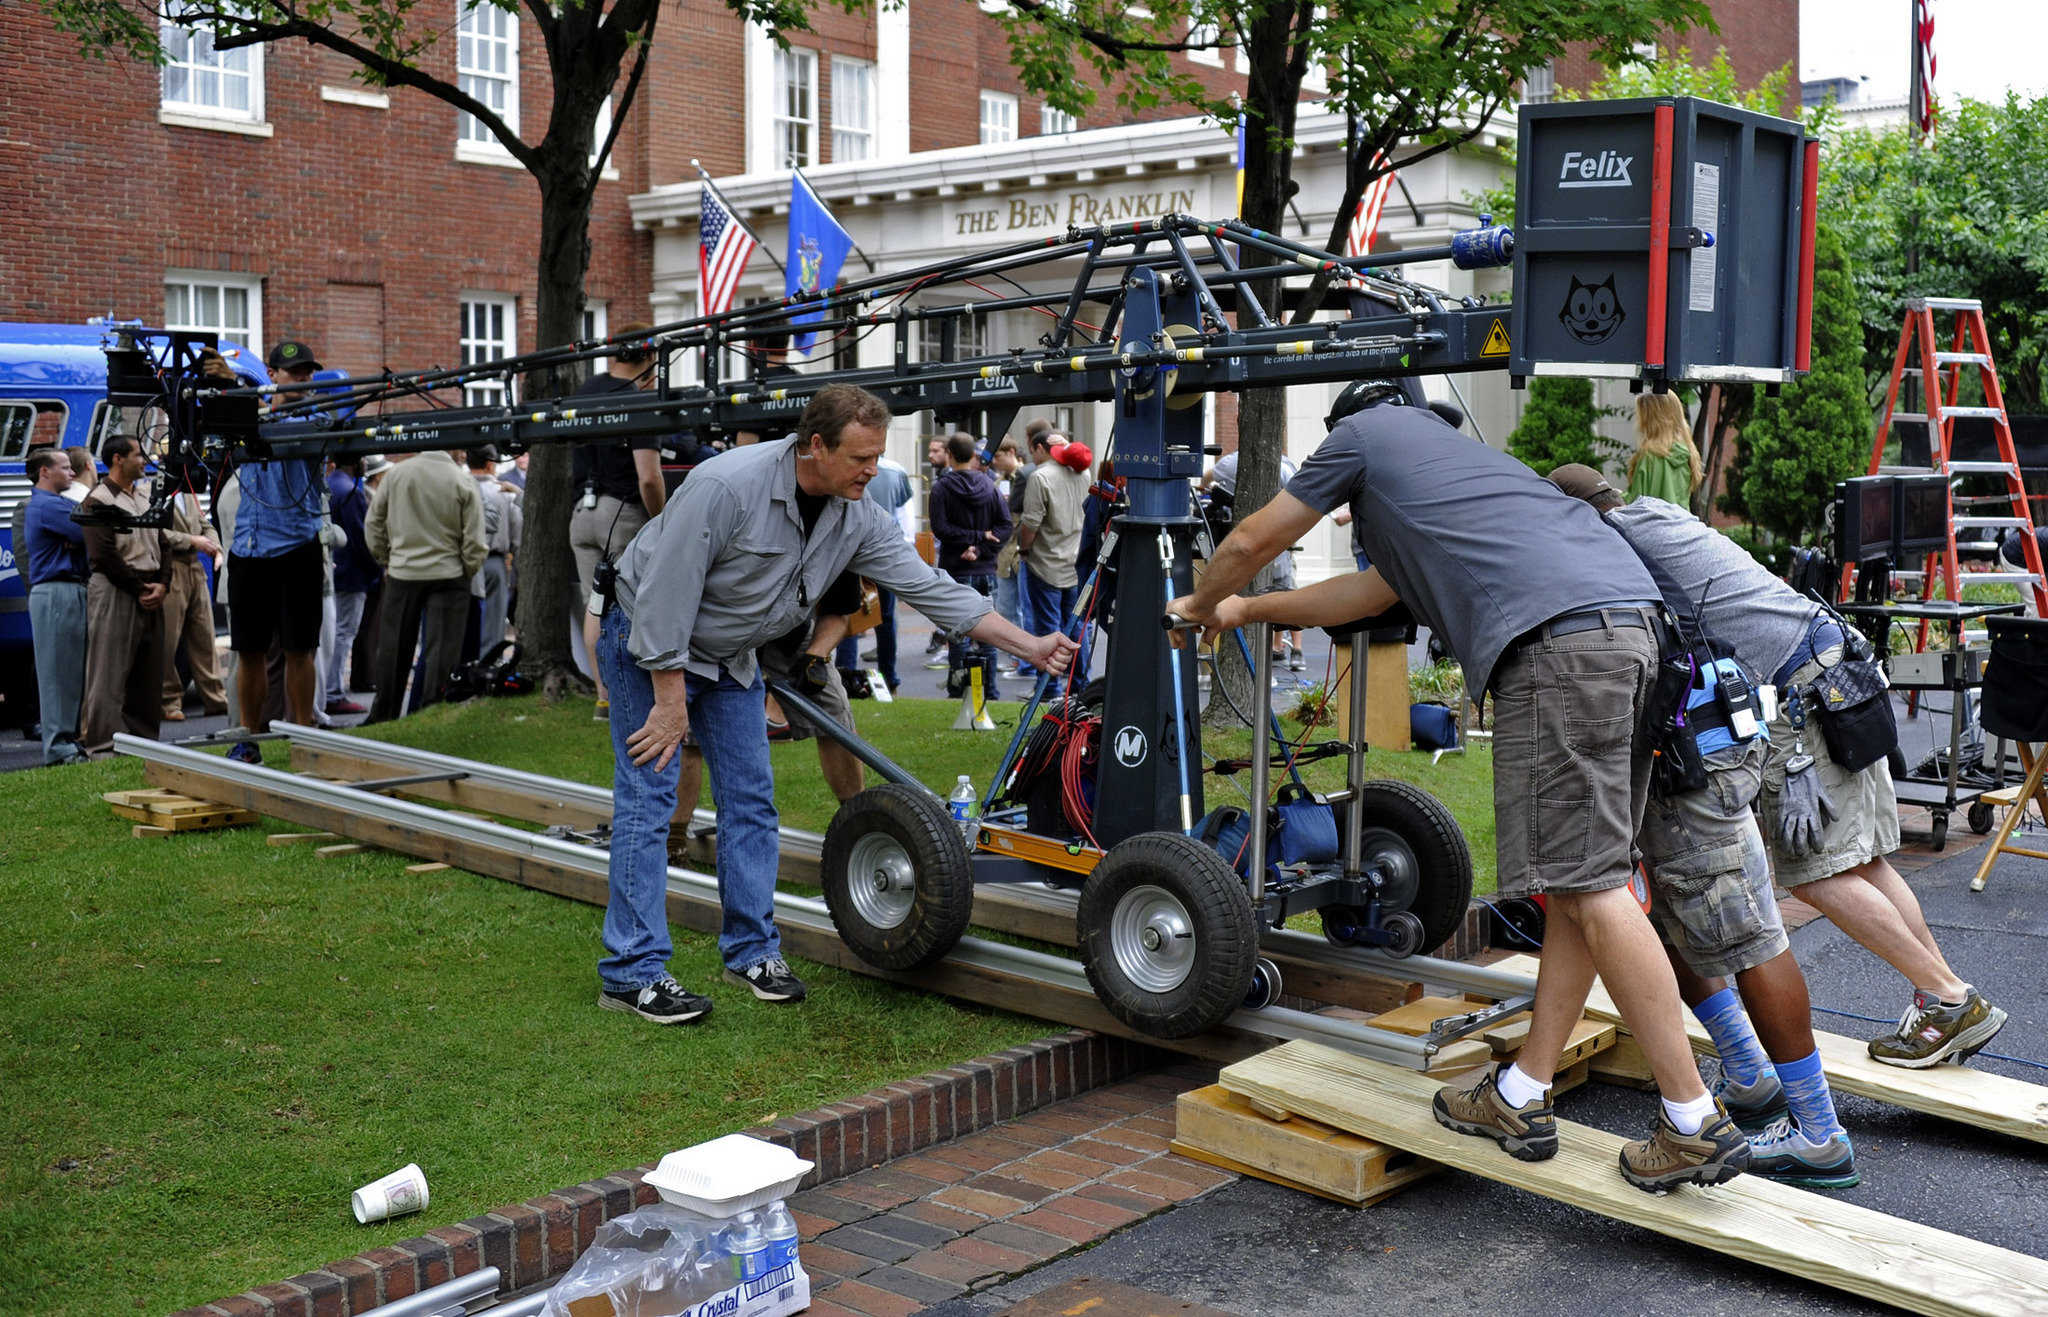 42-movie-filming9637jpg-605701da537f2720